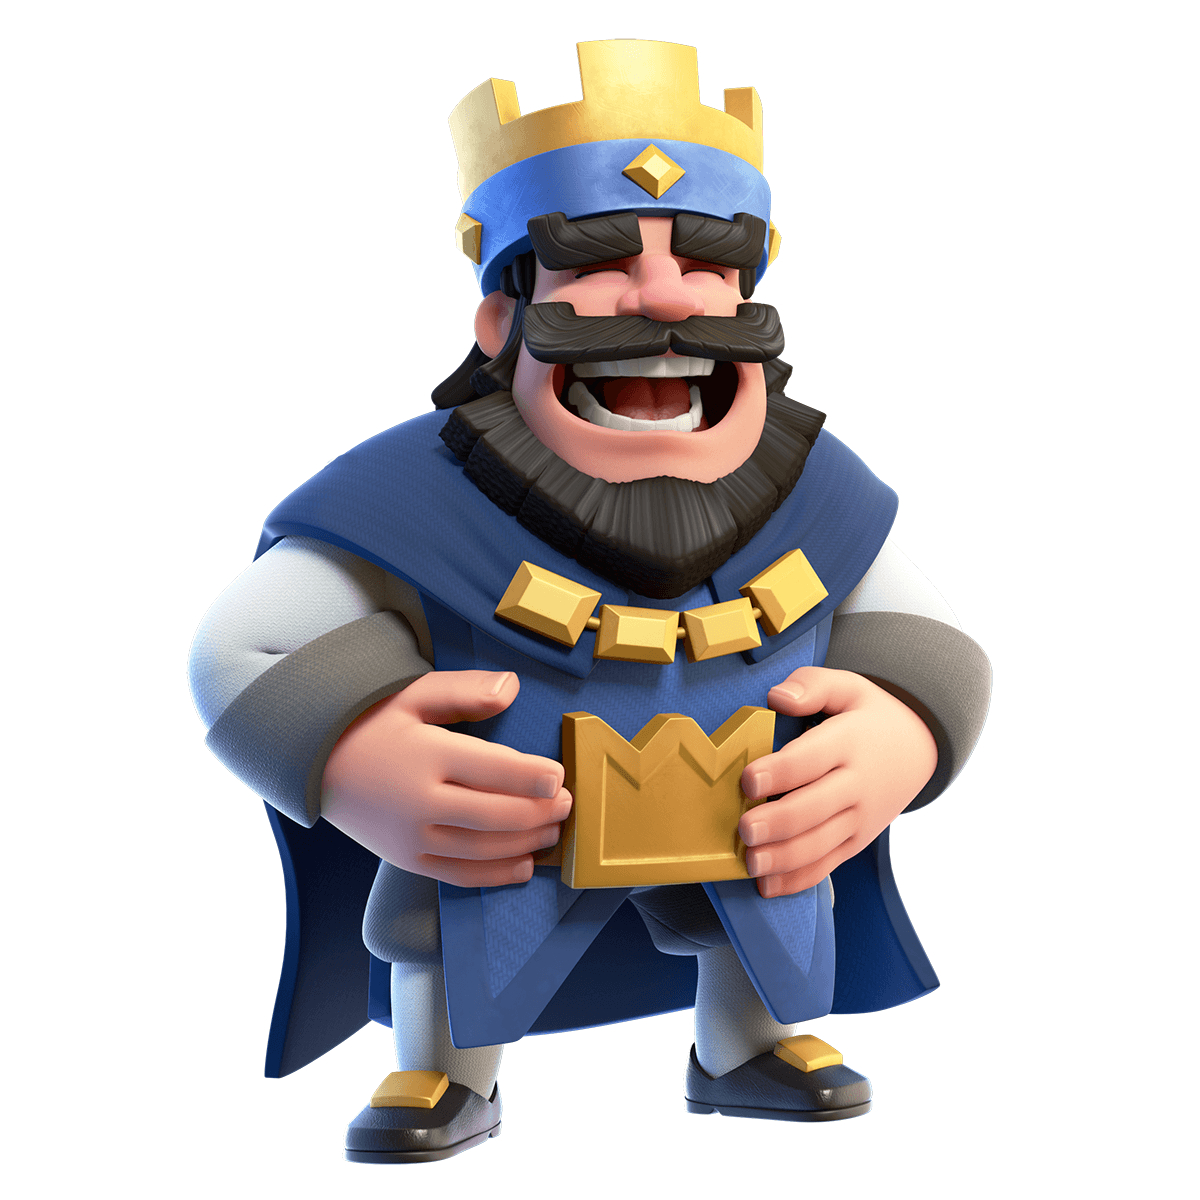 Zip] Download Clash Royale HD wallpapers and Pictures for PC and ...